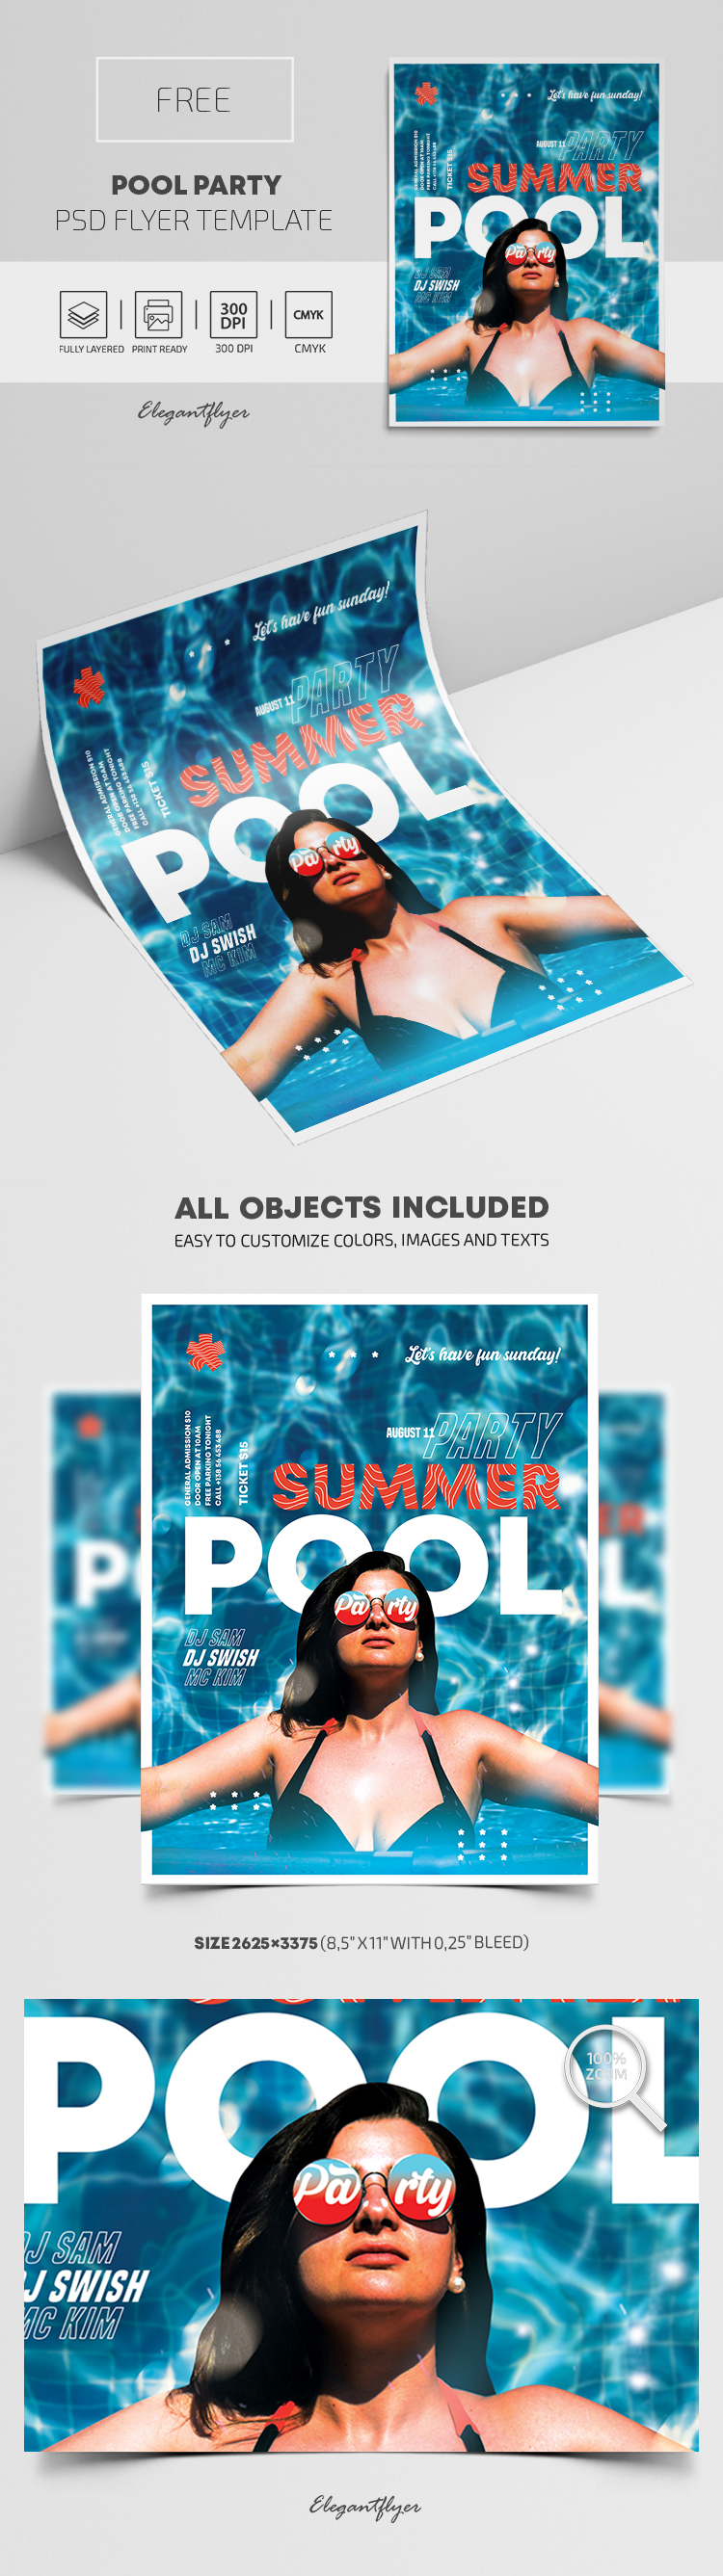 Pool Party – Free PSD Flyer Template